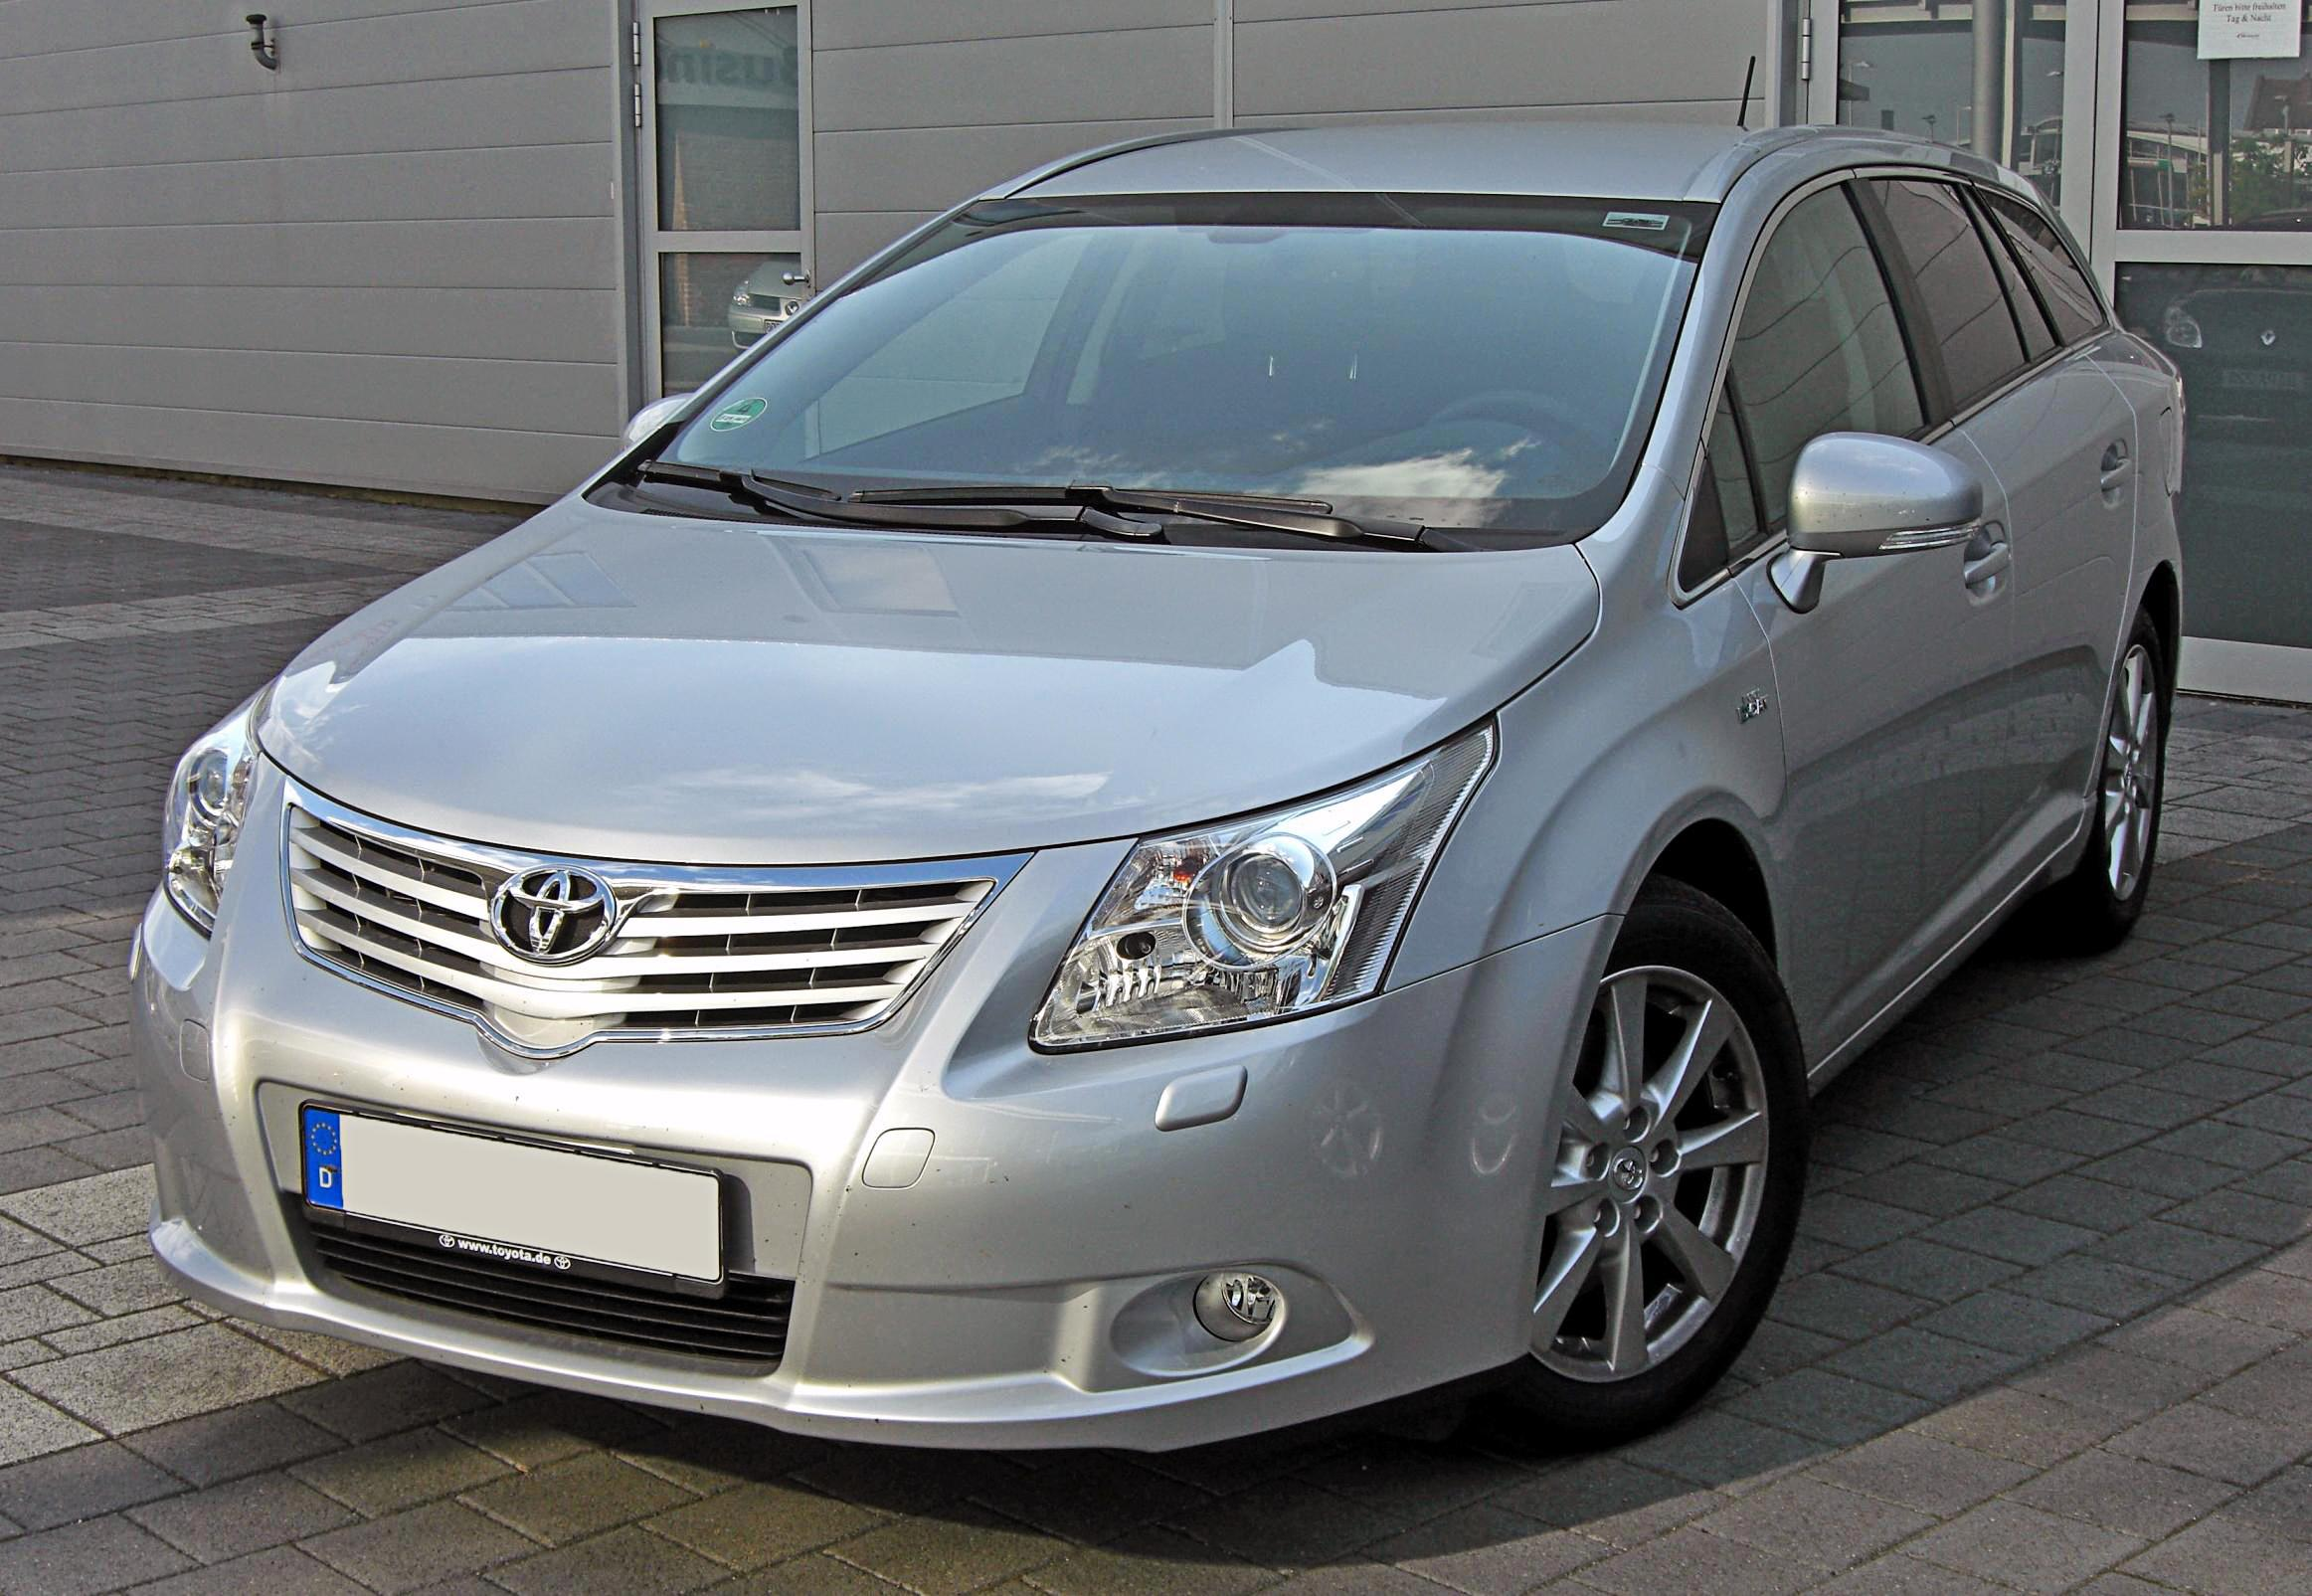 2009 toyota avensis iii � pictures information and specs